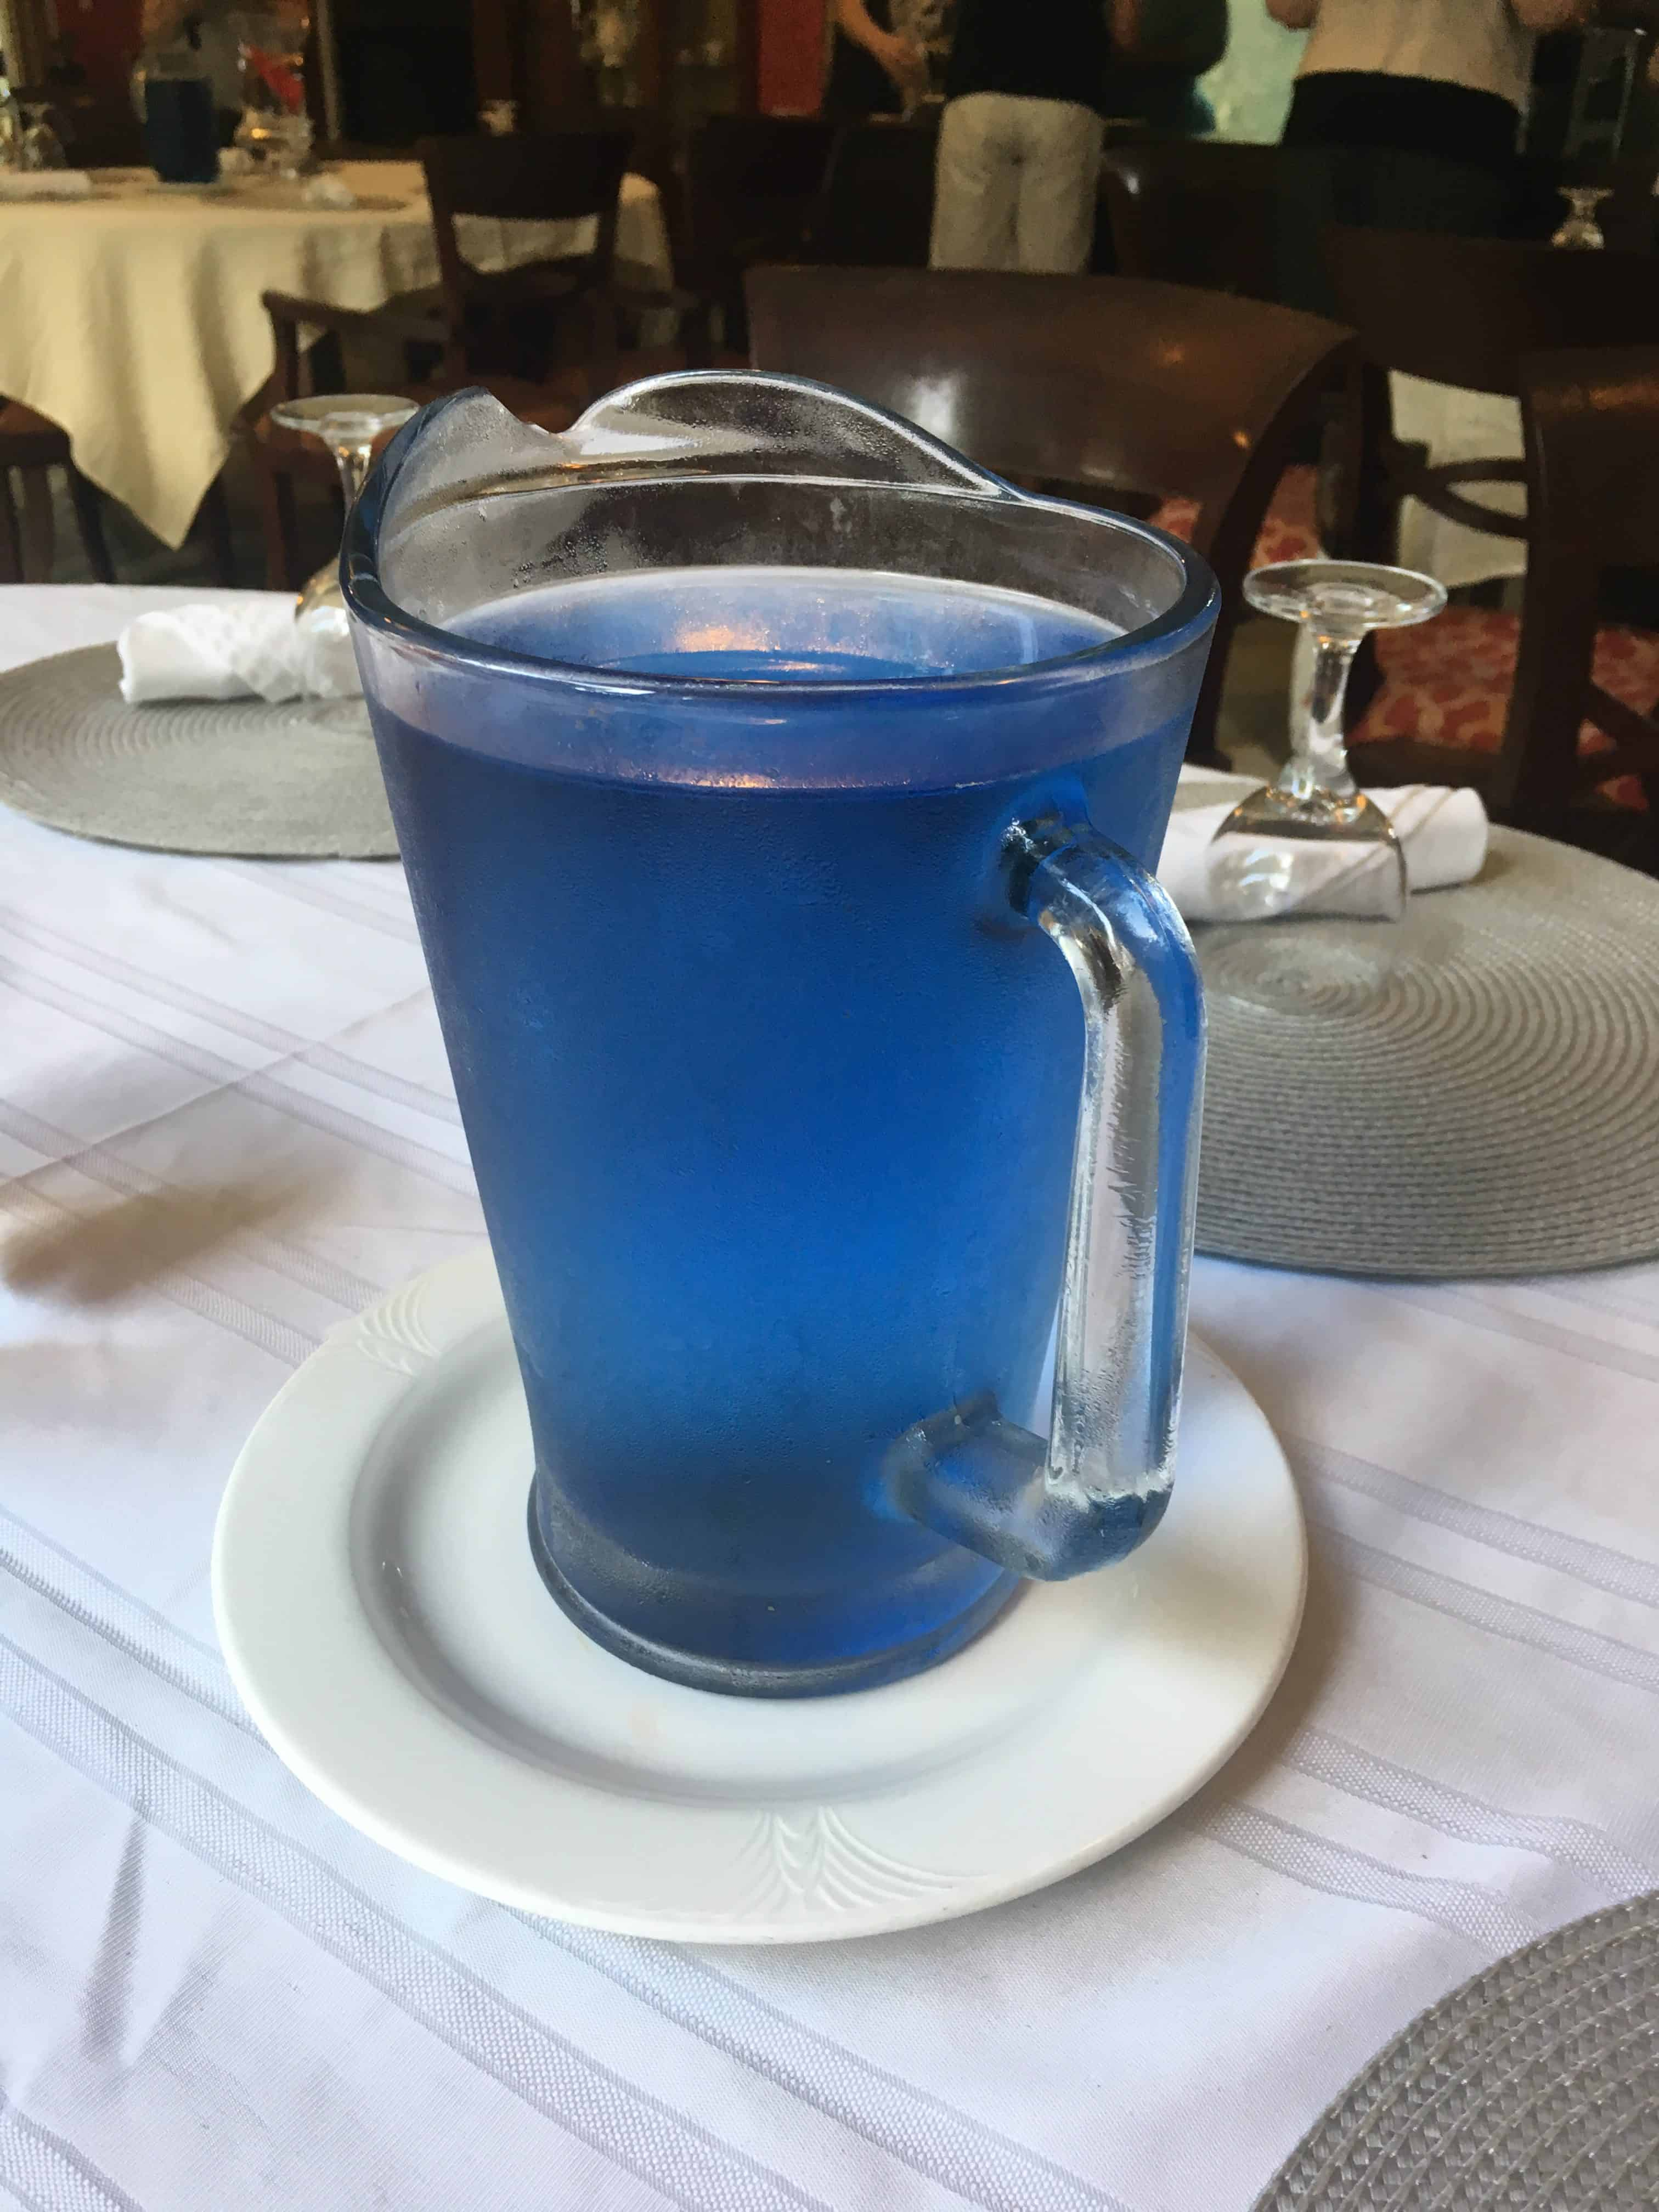 Photo of a Pitcher of Butterfly Pea Flower Water at the Hawaii Island Retreat on the island of Hawaii during the Clean Food Dirty Girl Hawaii Retreat. https://trimazing.com/